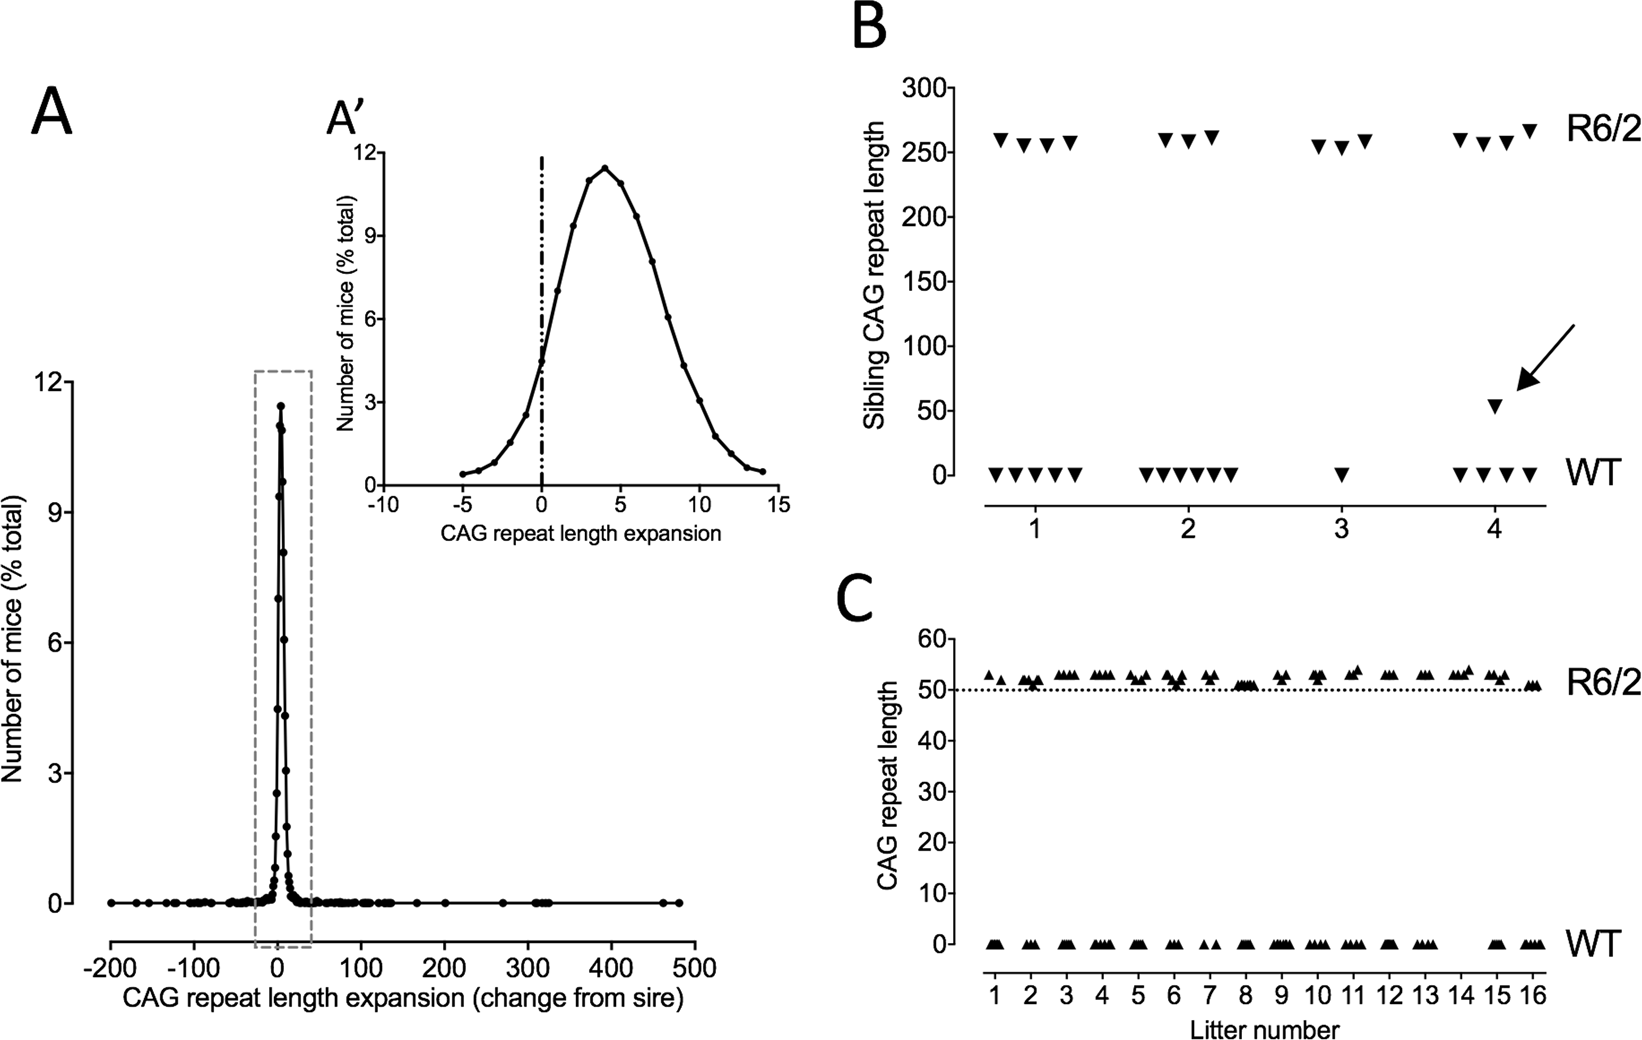 Antagonistic pleiotropy in mice carrying a CAG repeat